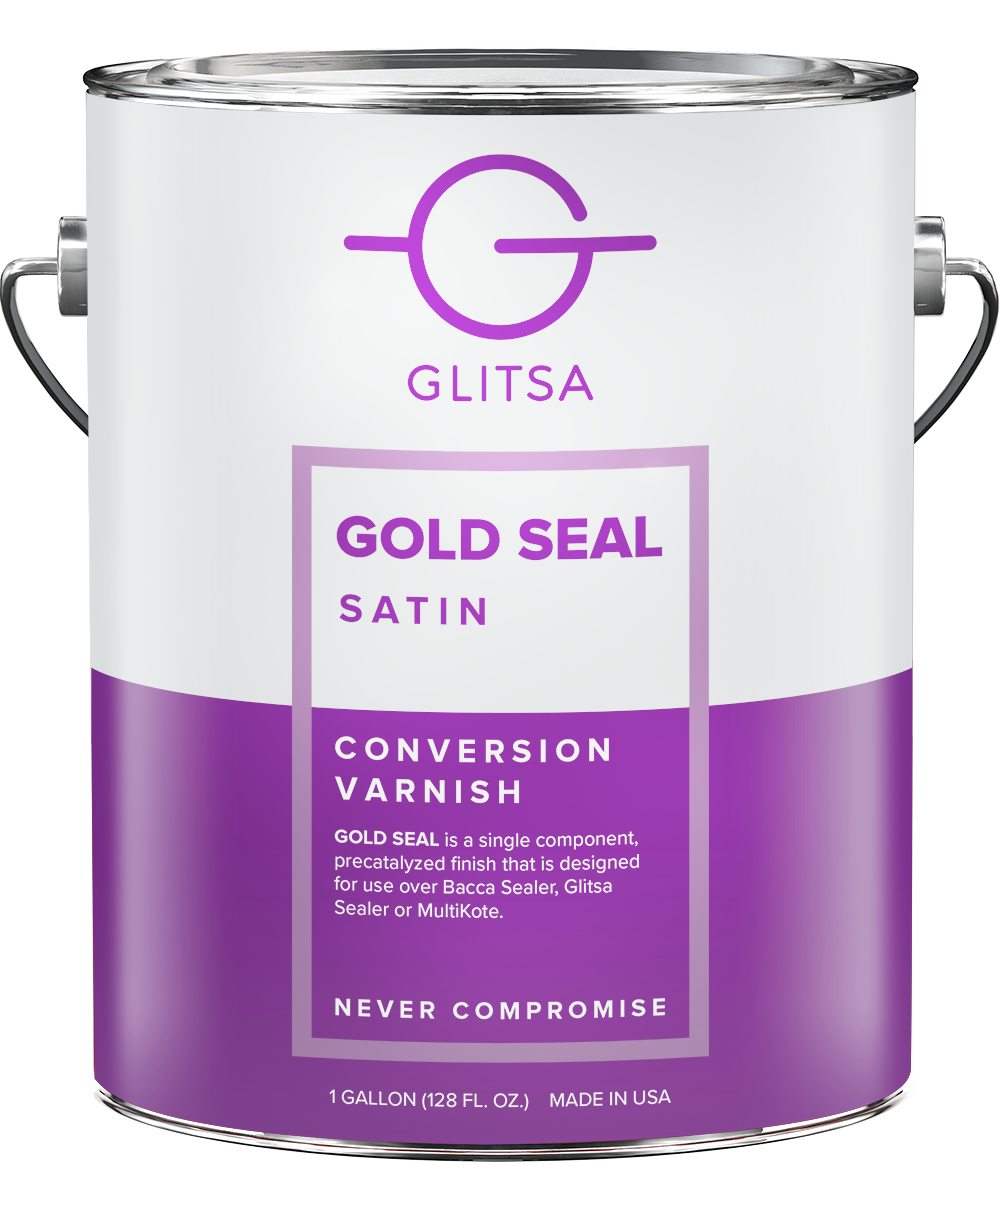 Glitsa Gold Seal